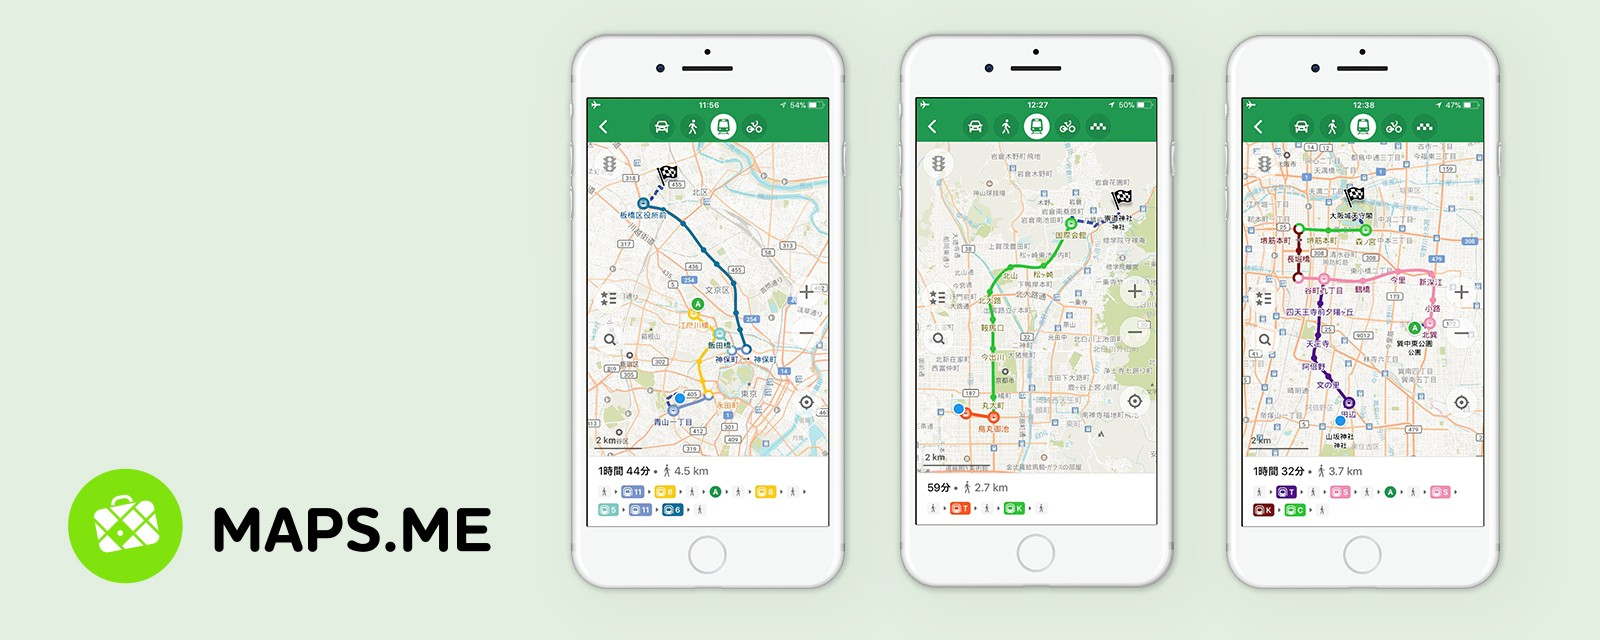 MAPS.ME Review: Must-have alternative to Google Maps